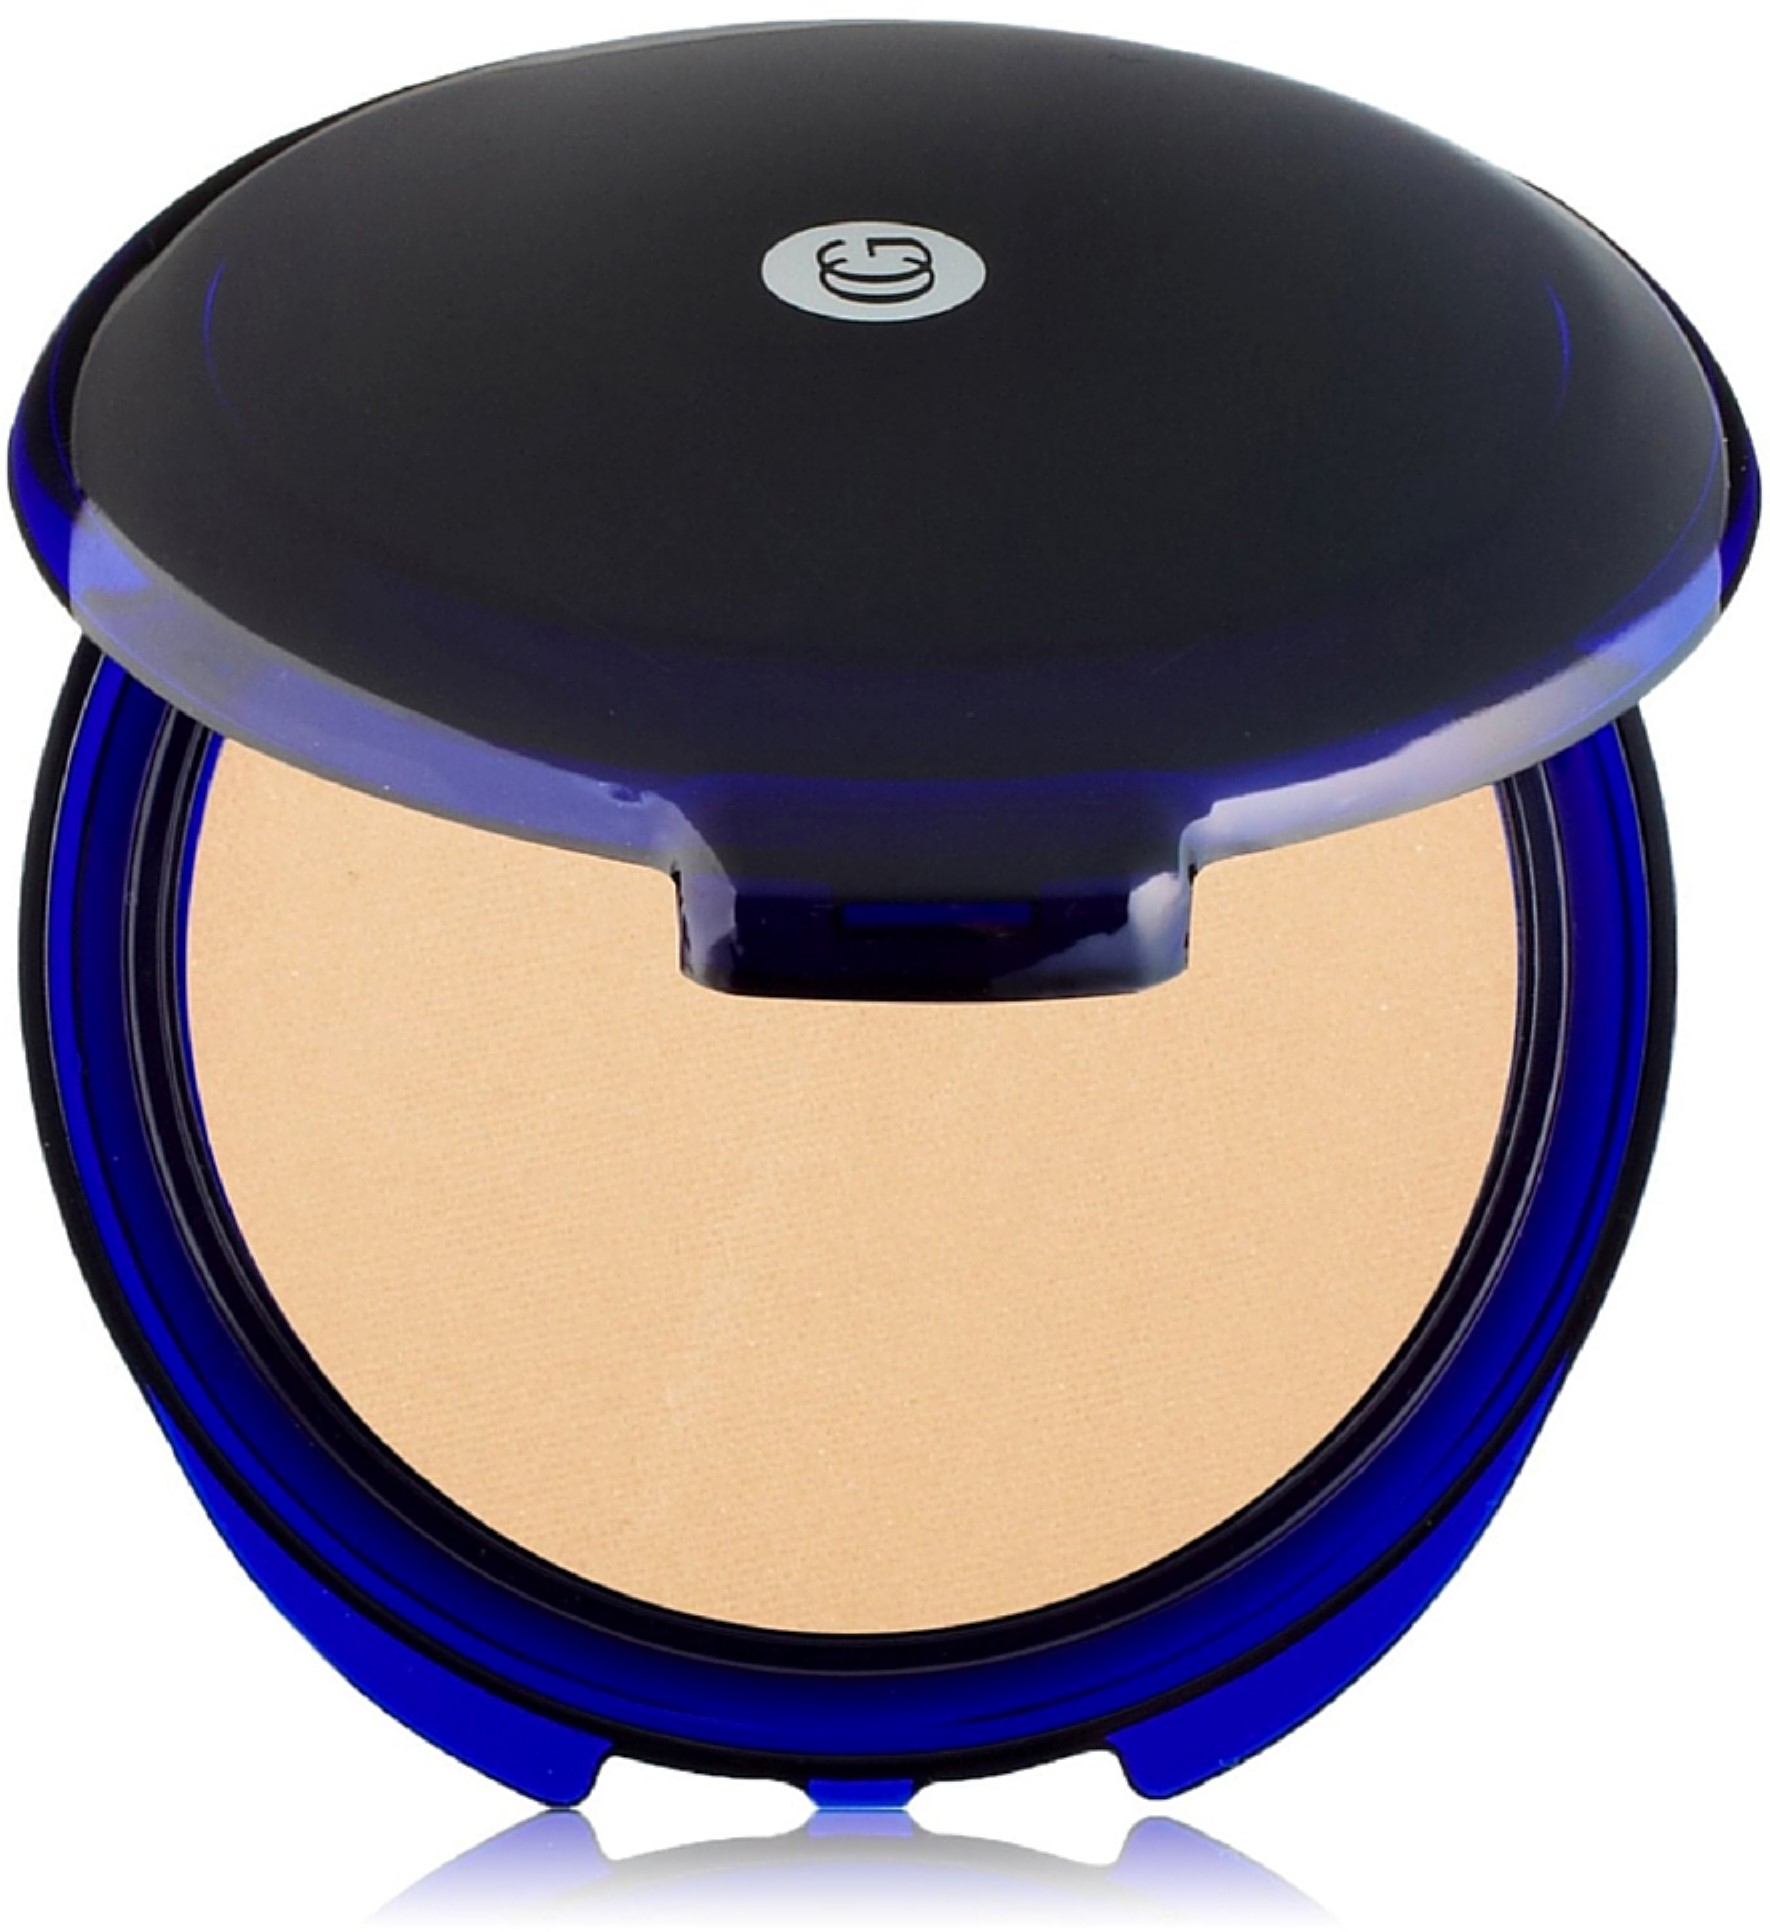 CoverGirl Smoothers Pressed Powder, Translucent Honey [720] 0.32 oz (Pack of 3)